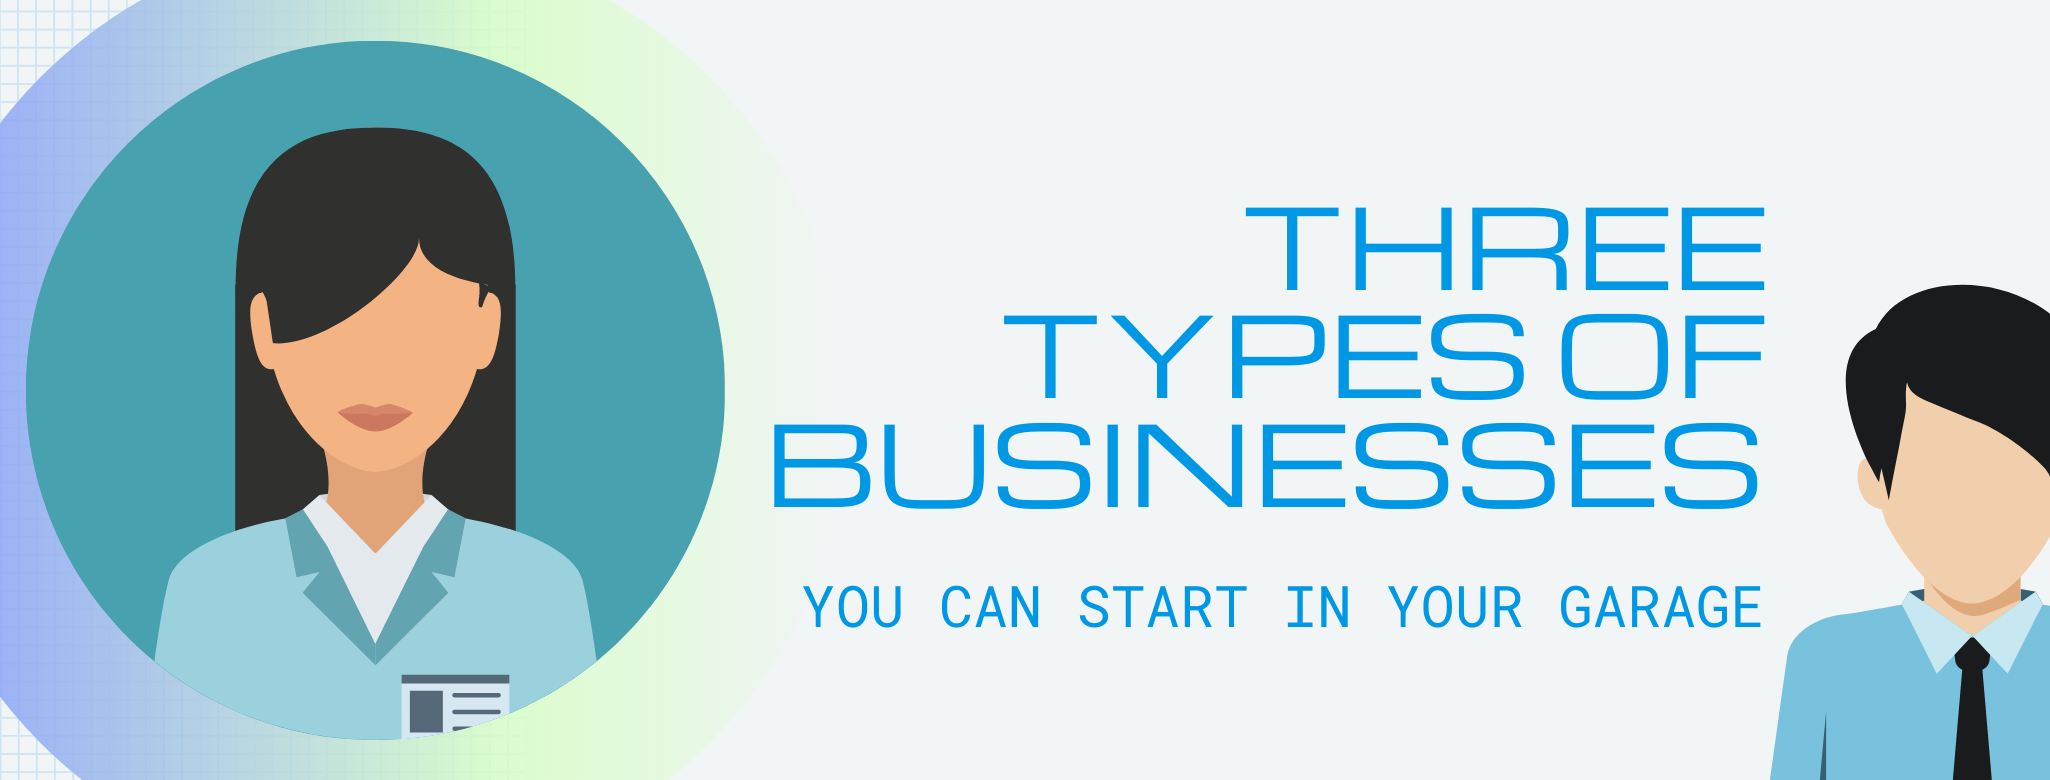 3 types of businesses banner